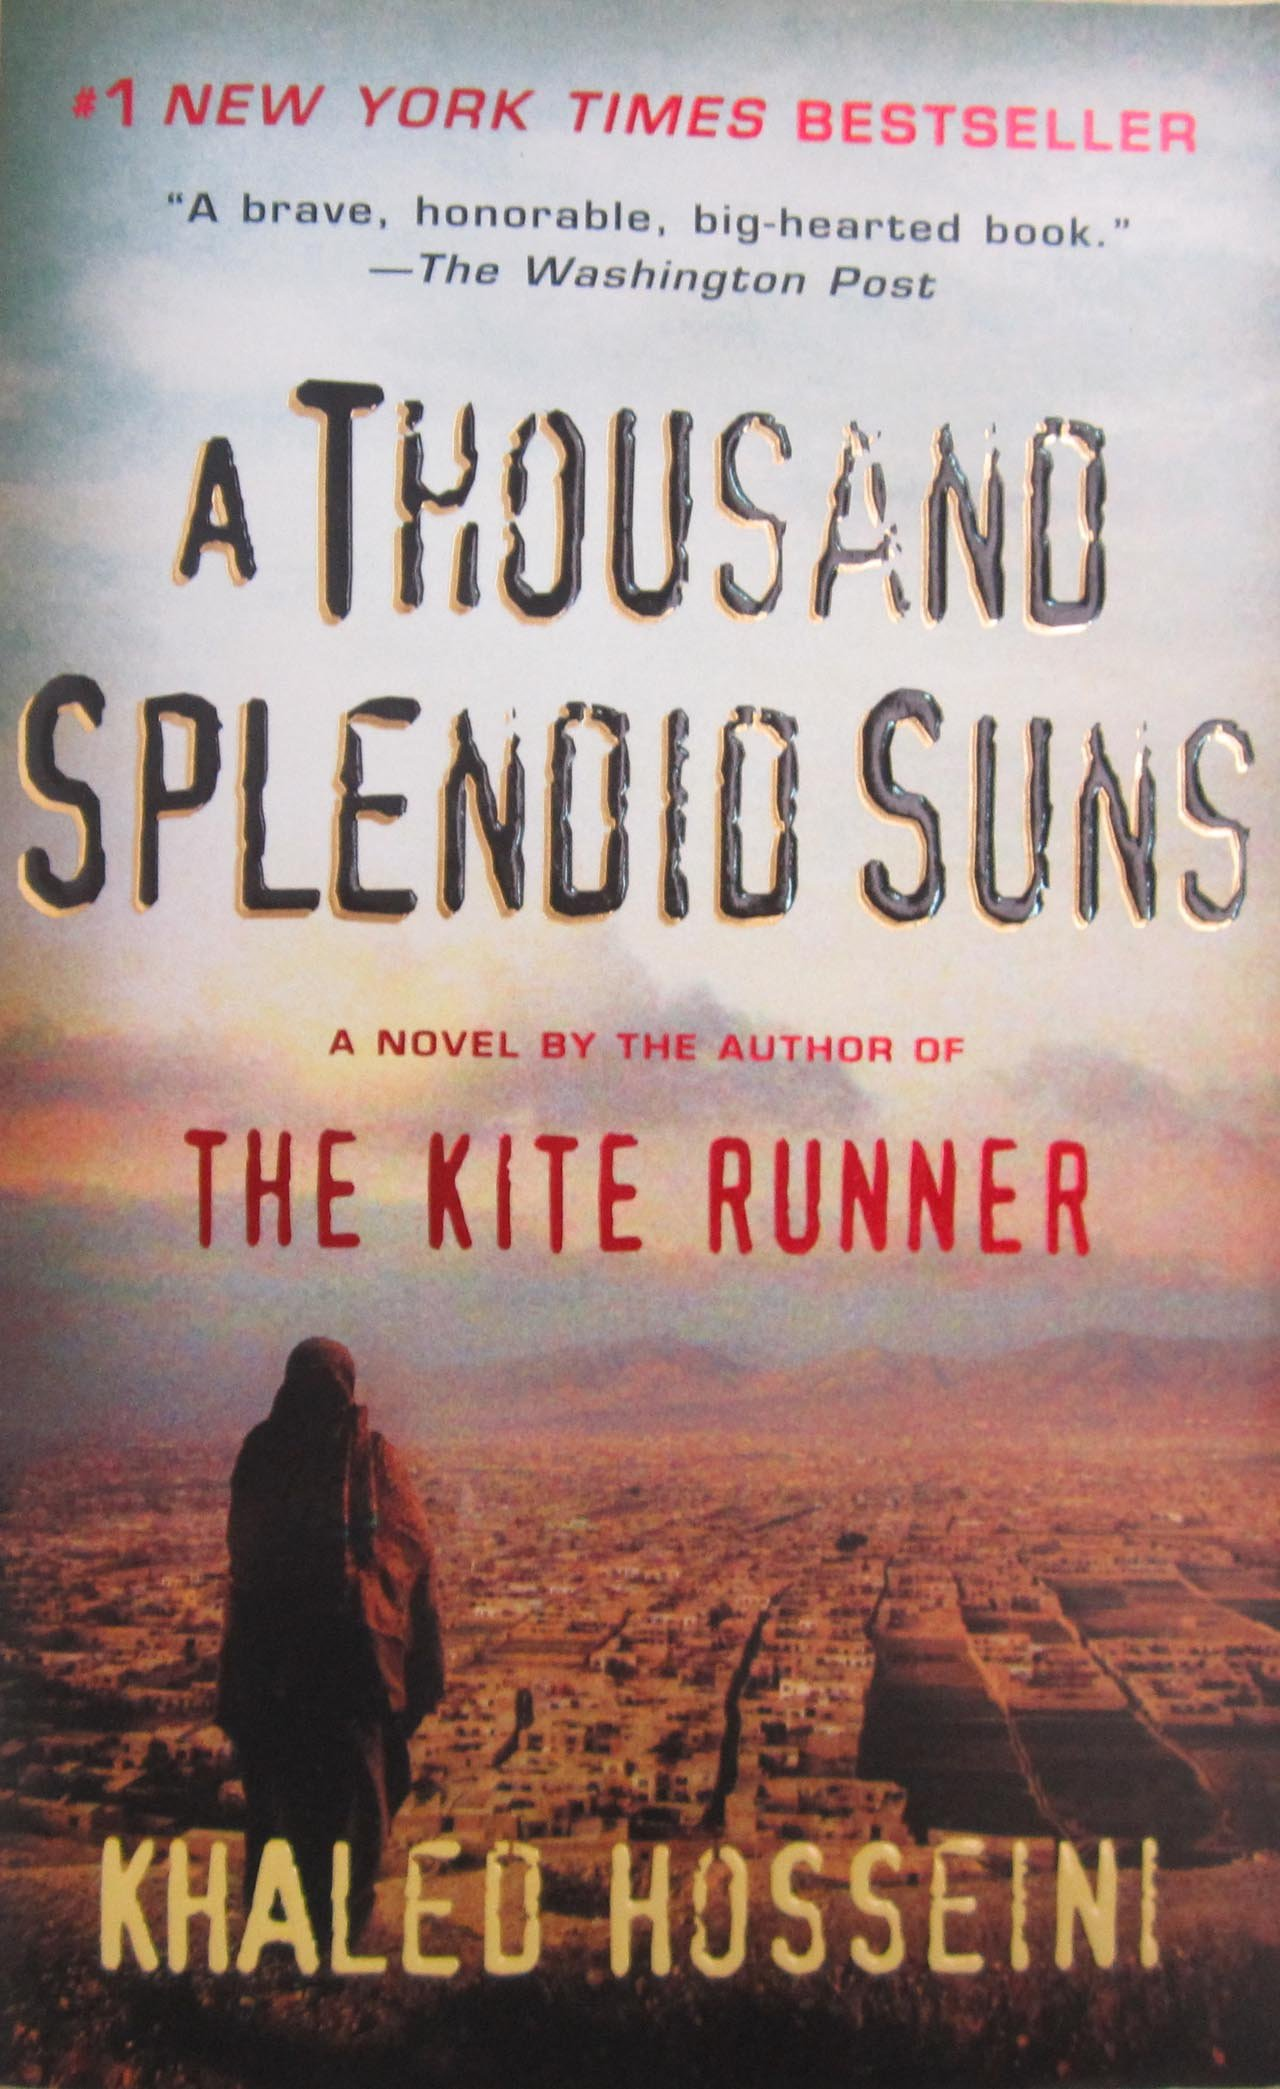 thousand splendid suns essay interpretive essay on lonelinessof  a thousand splendid suns khaled hosseini amazon a thousand splendid suns khaled hosseini 9781594483851 com books